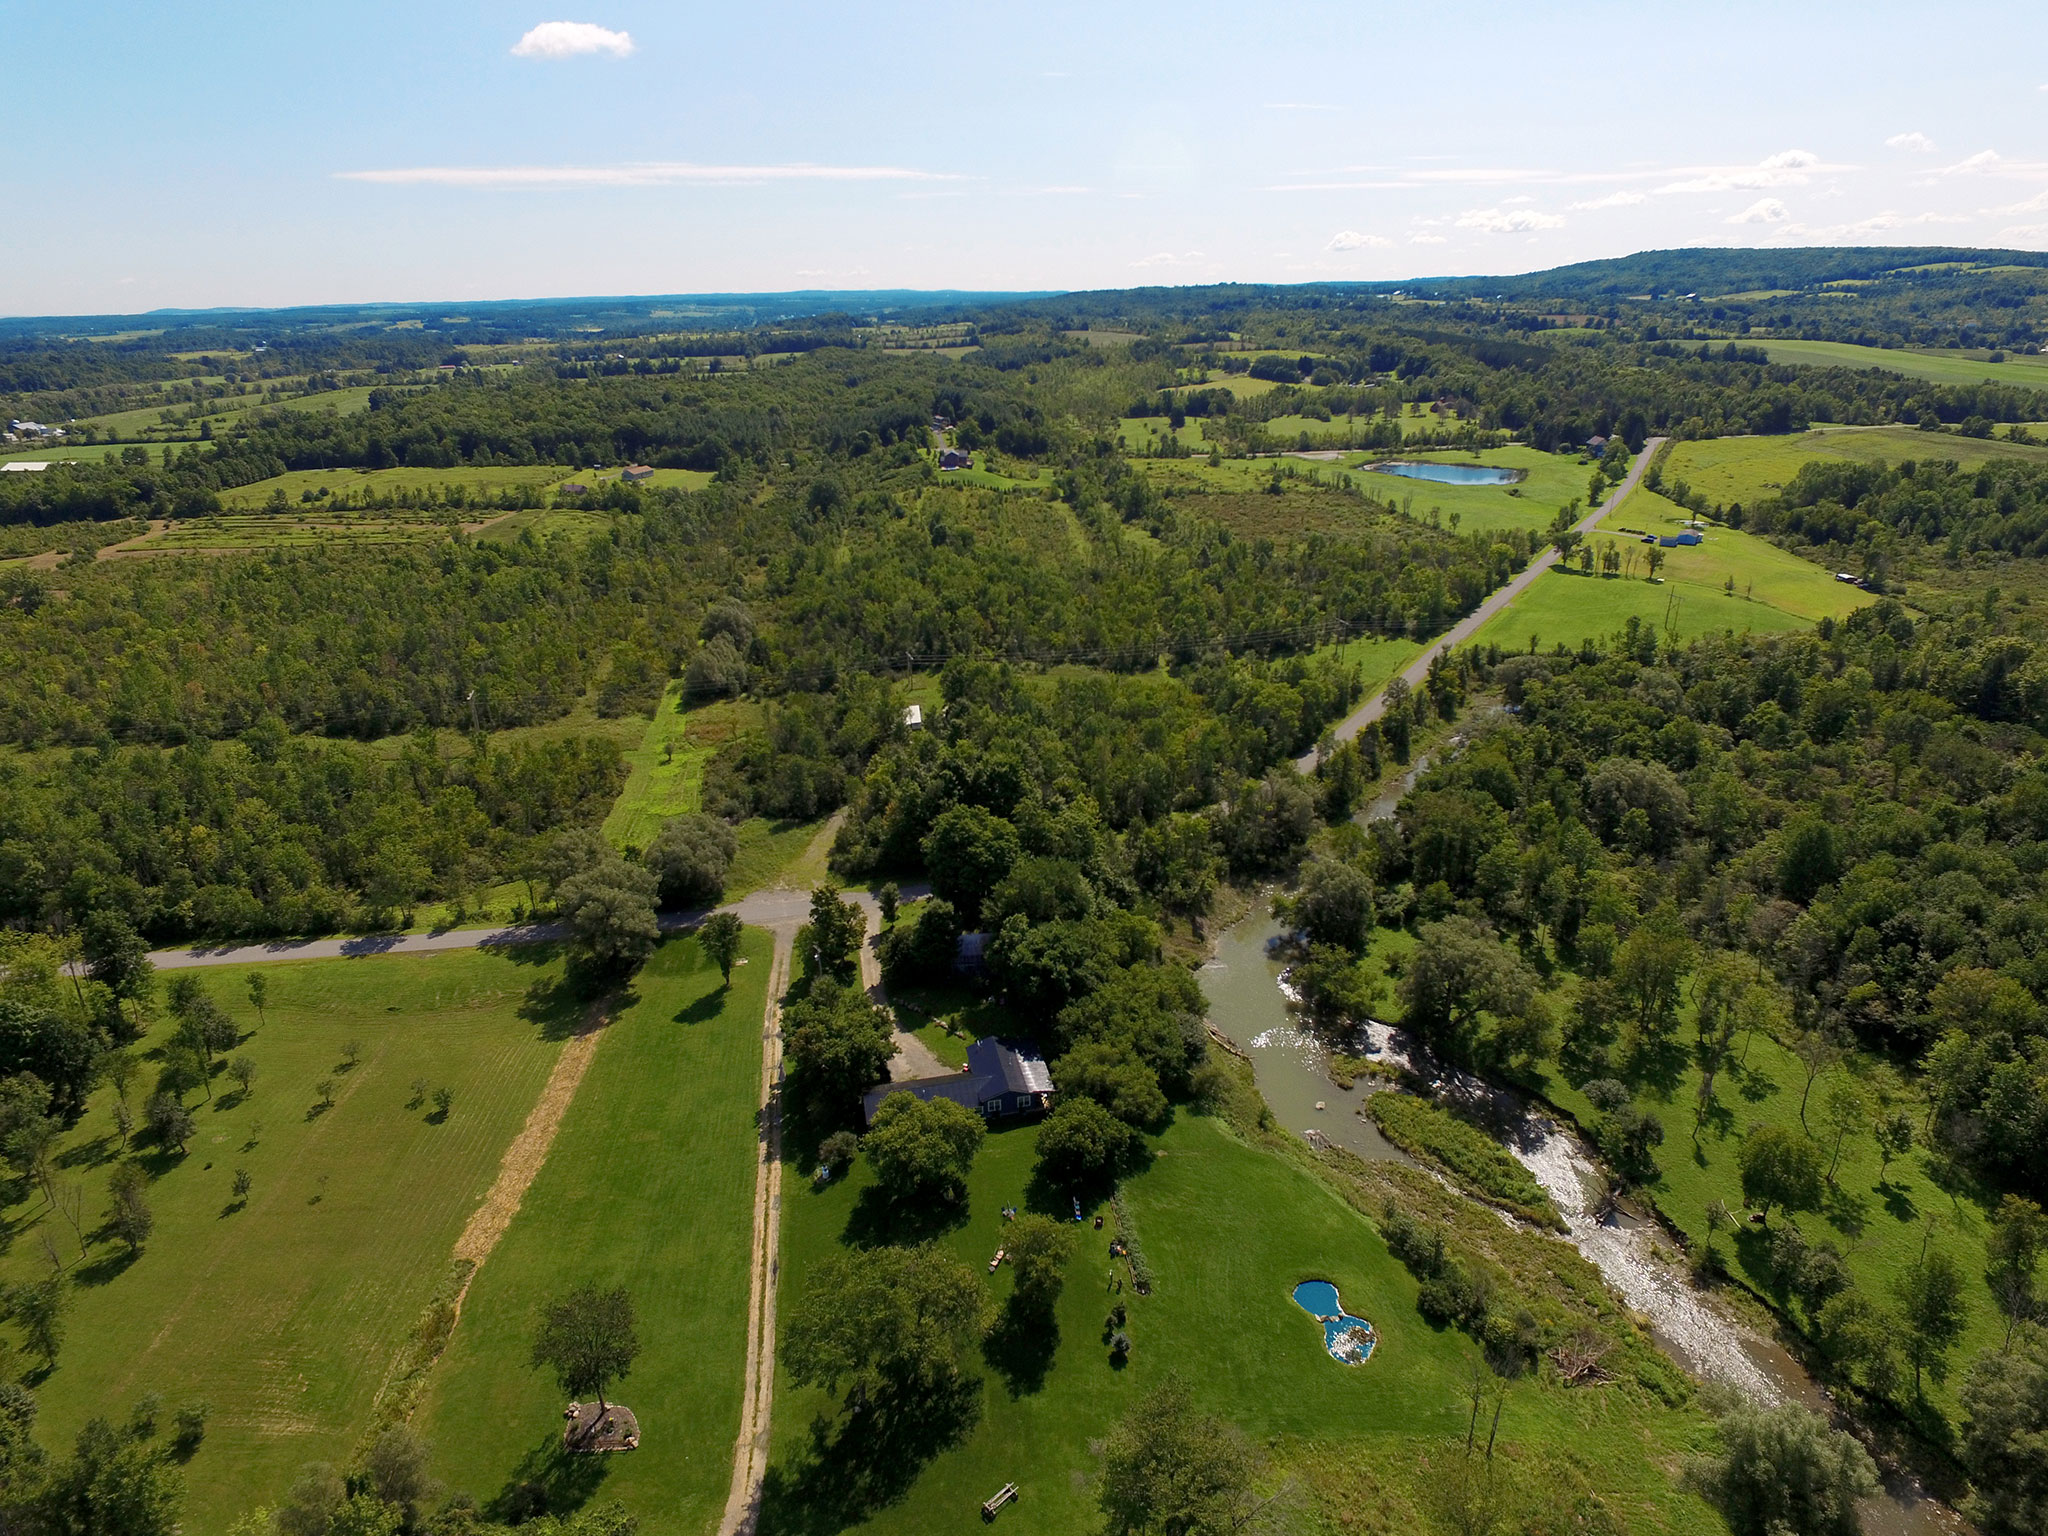 High altitude aerial photo of property in Canajoharie, New York.